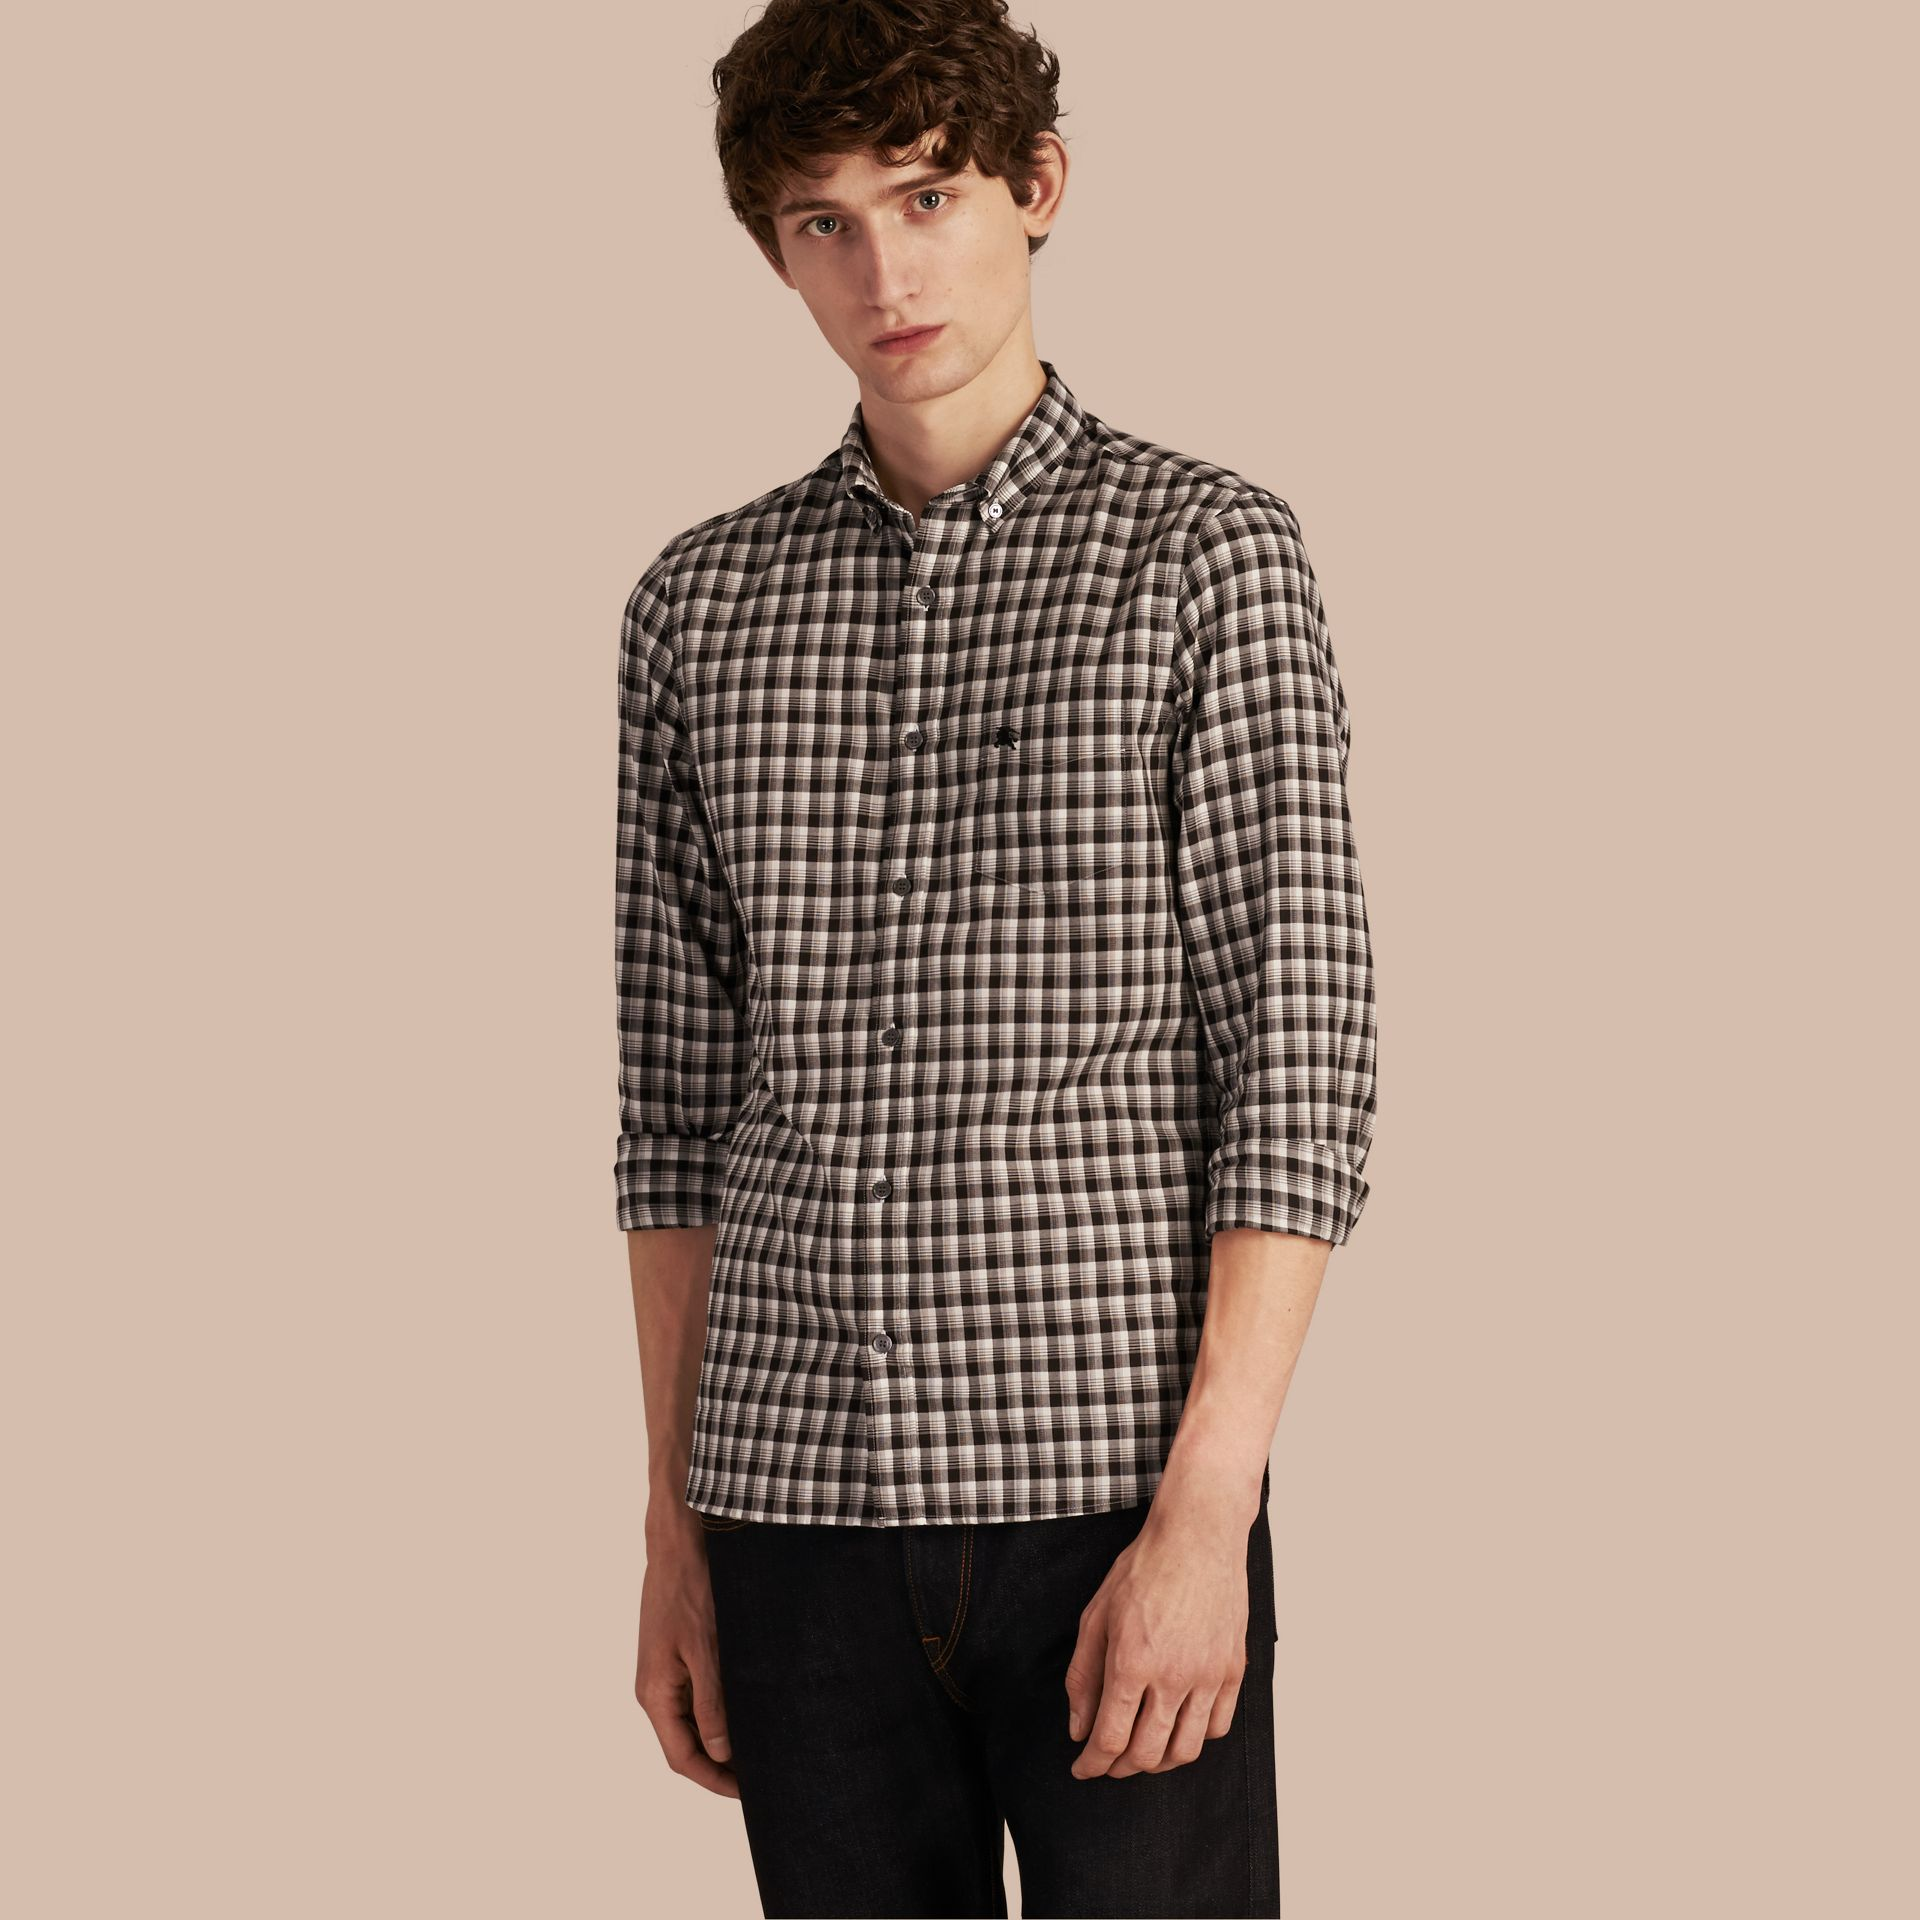 Black Gingham Check Cotton Twill Shirt Black - gallery image 1